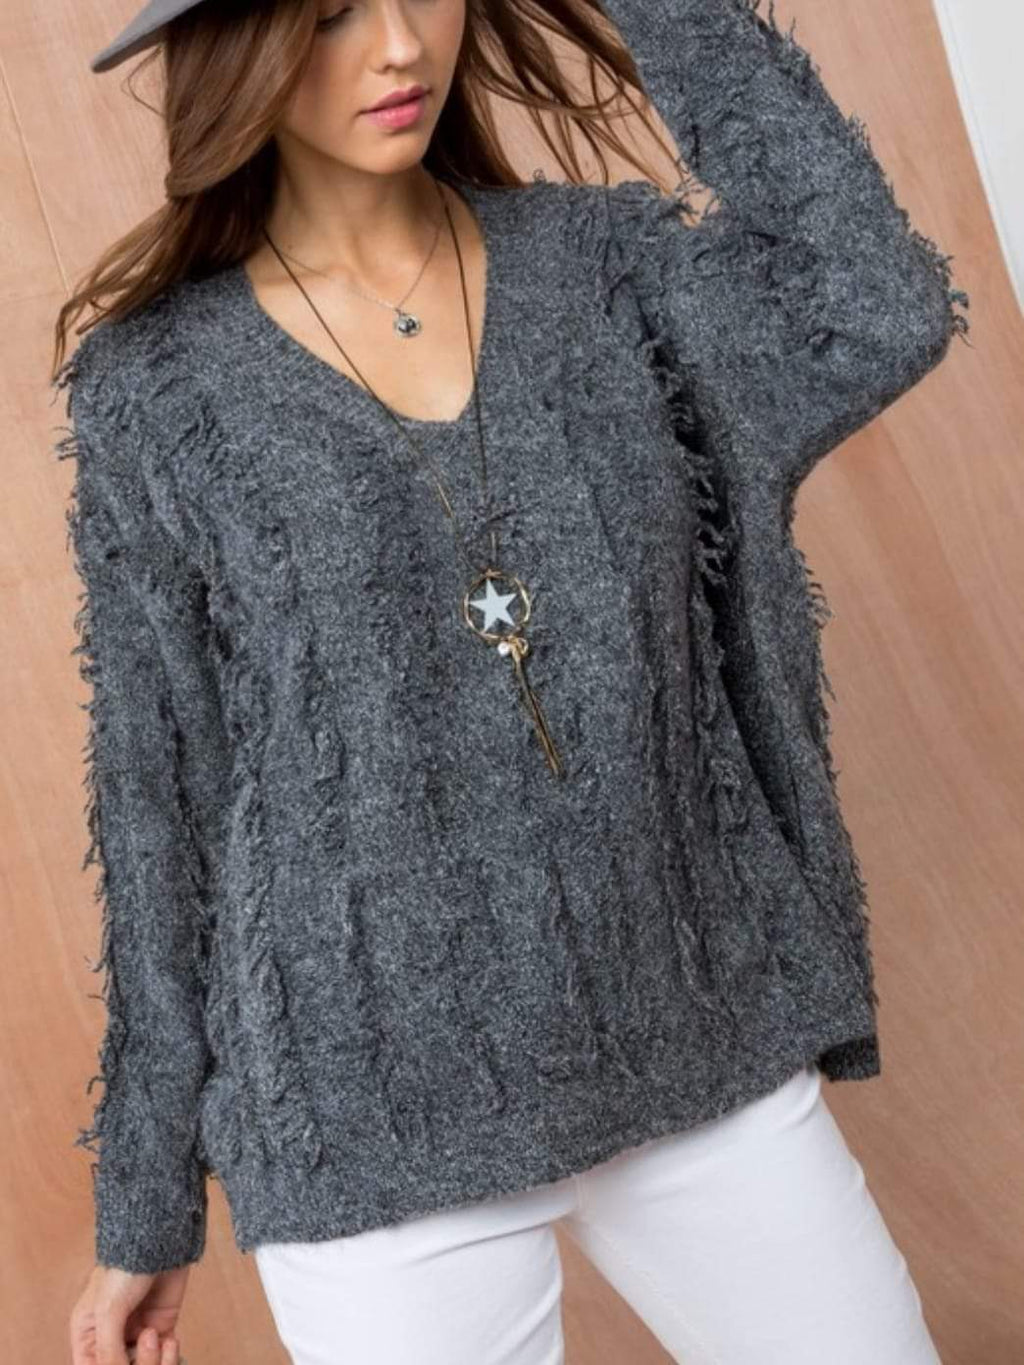 Zola Fringe Sweater - Charcoal